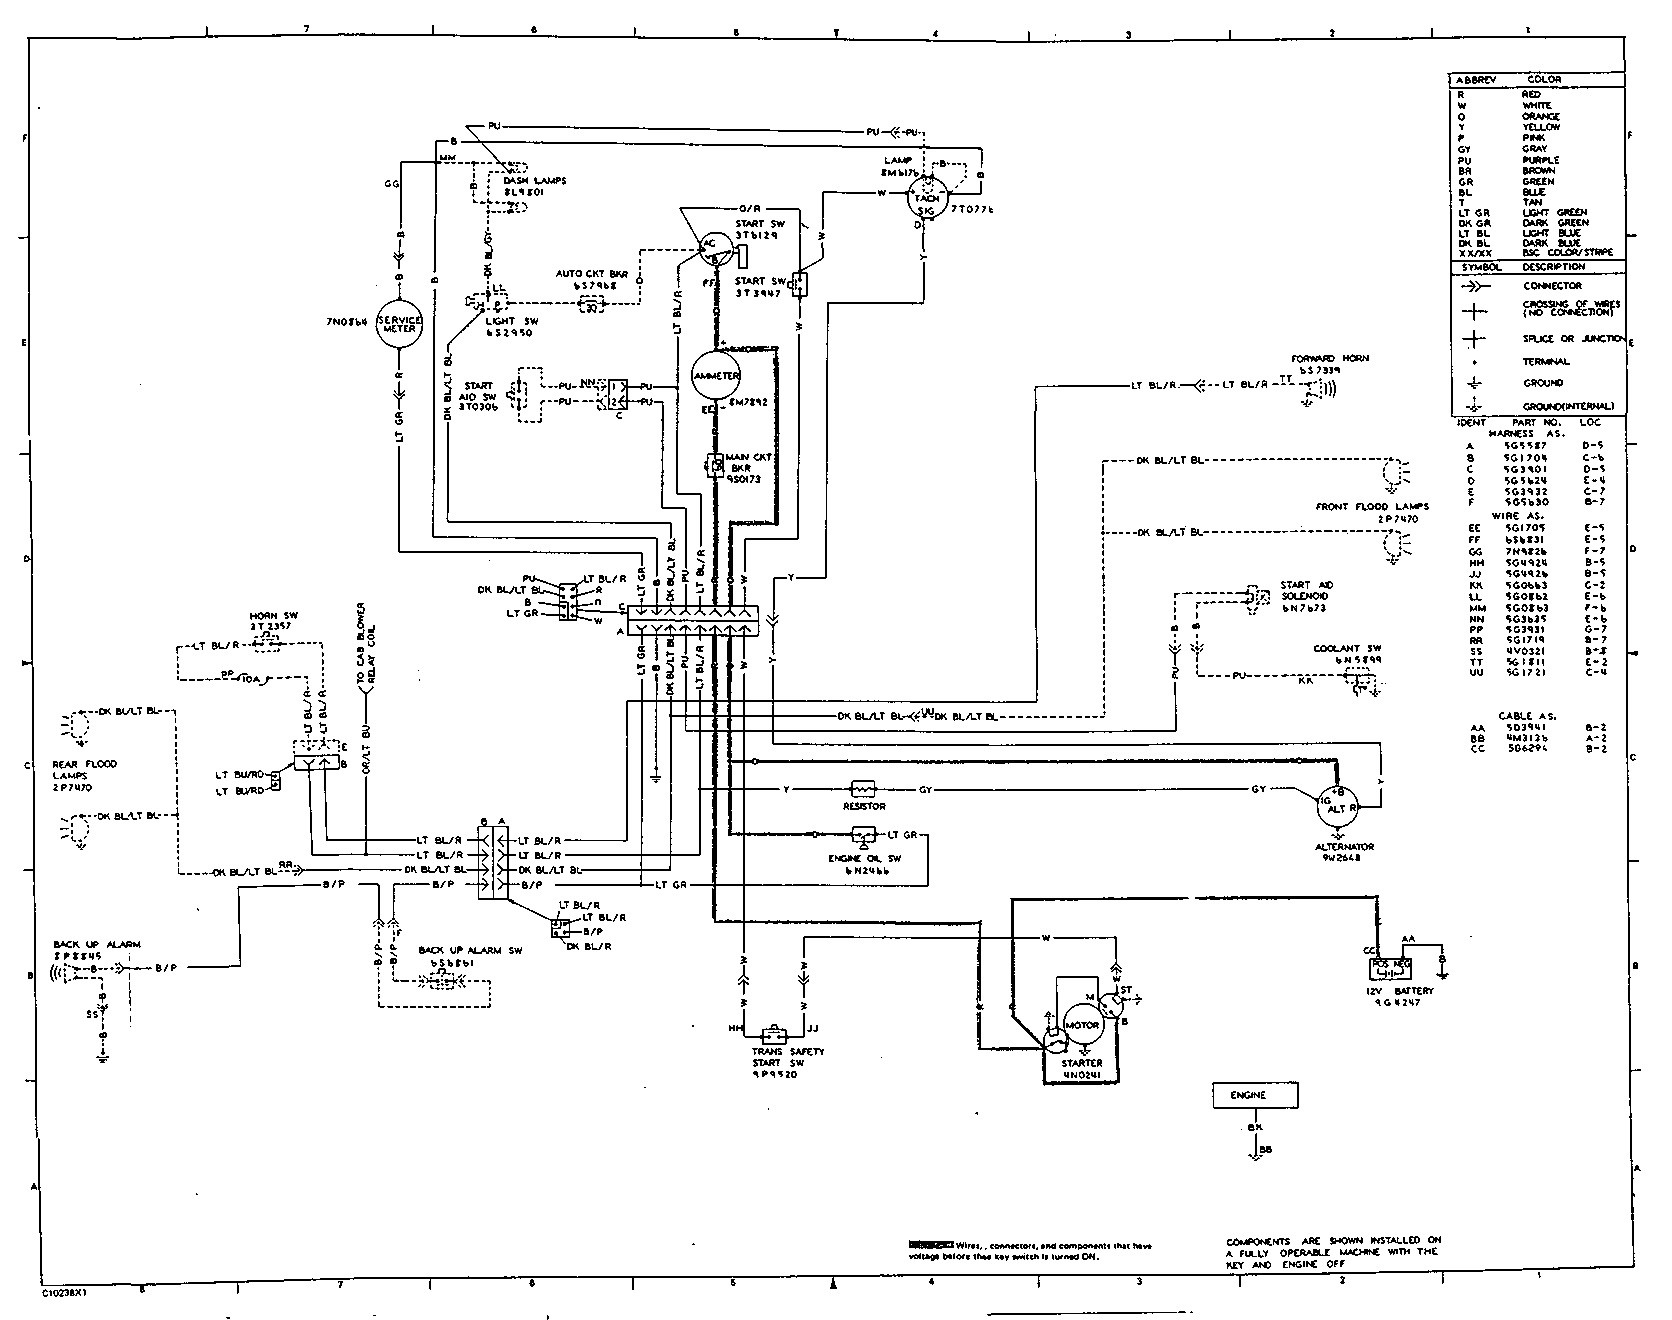 Cat 40 Pin Ecm Pinout 12 1kz Engine Ecu Wiring Diagram